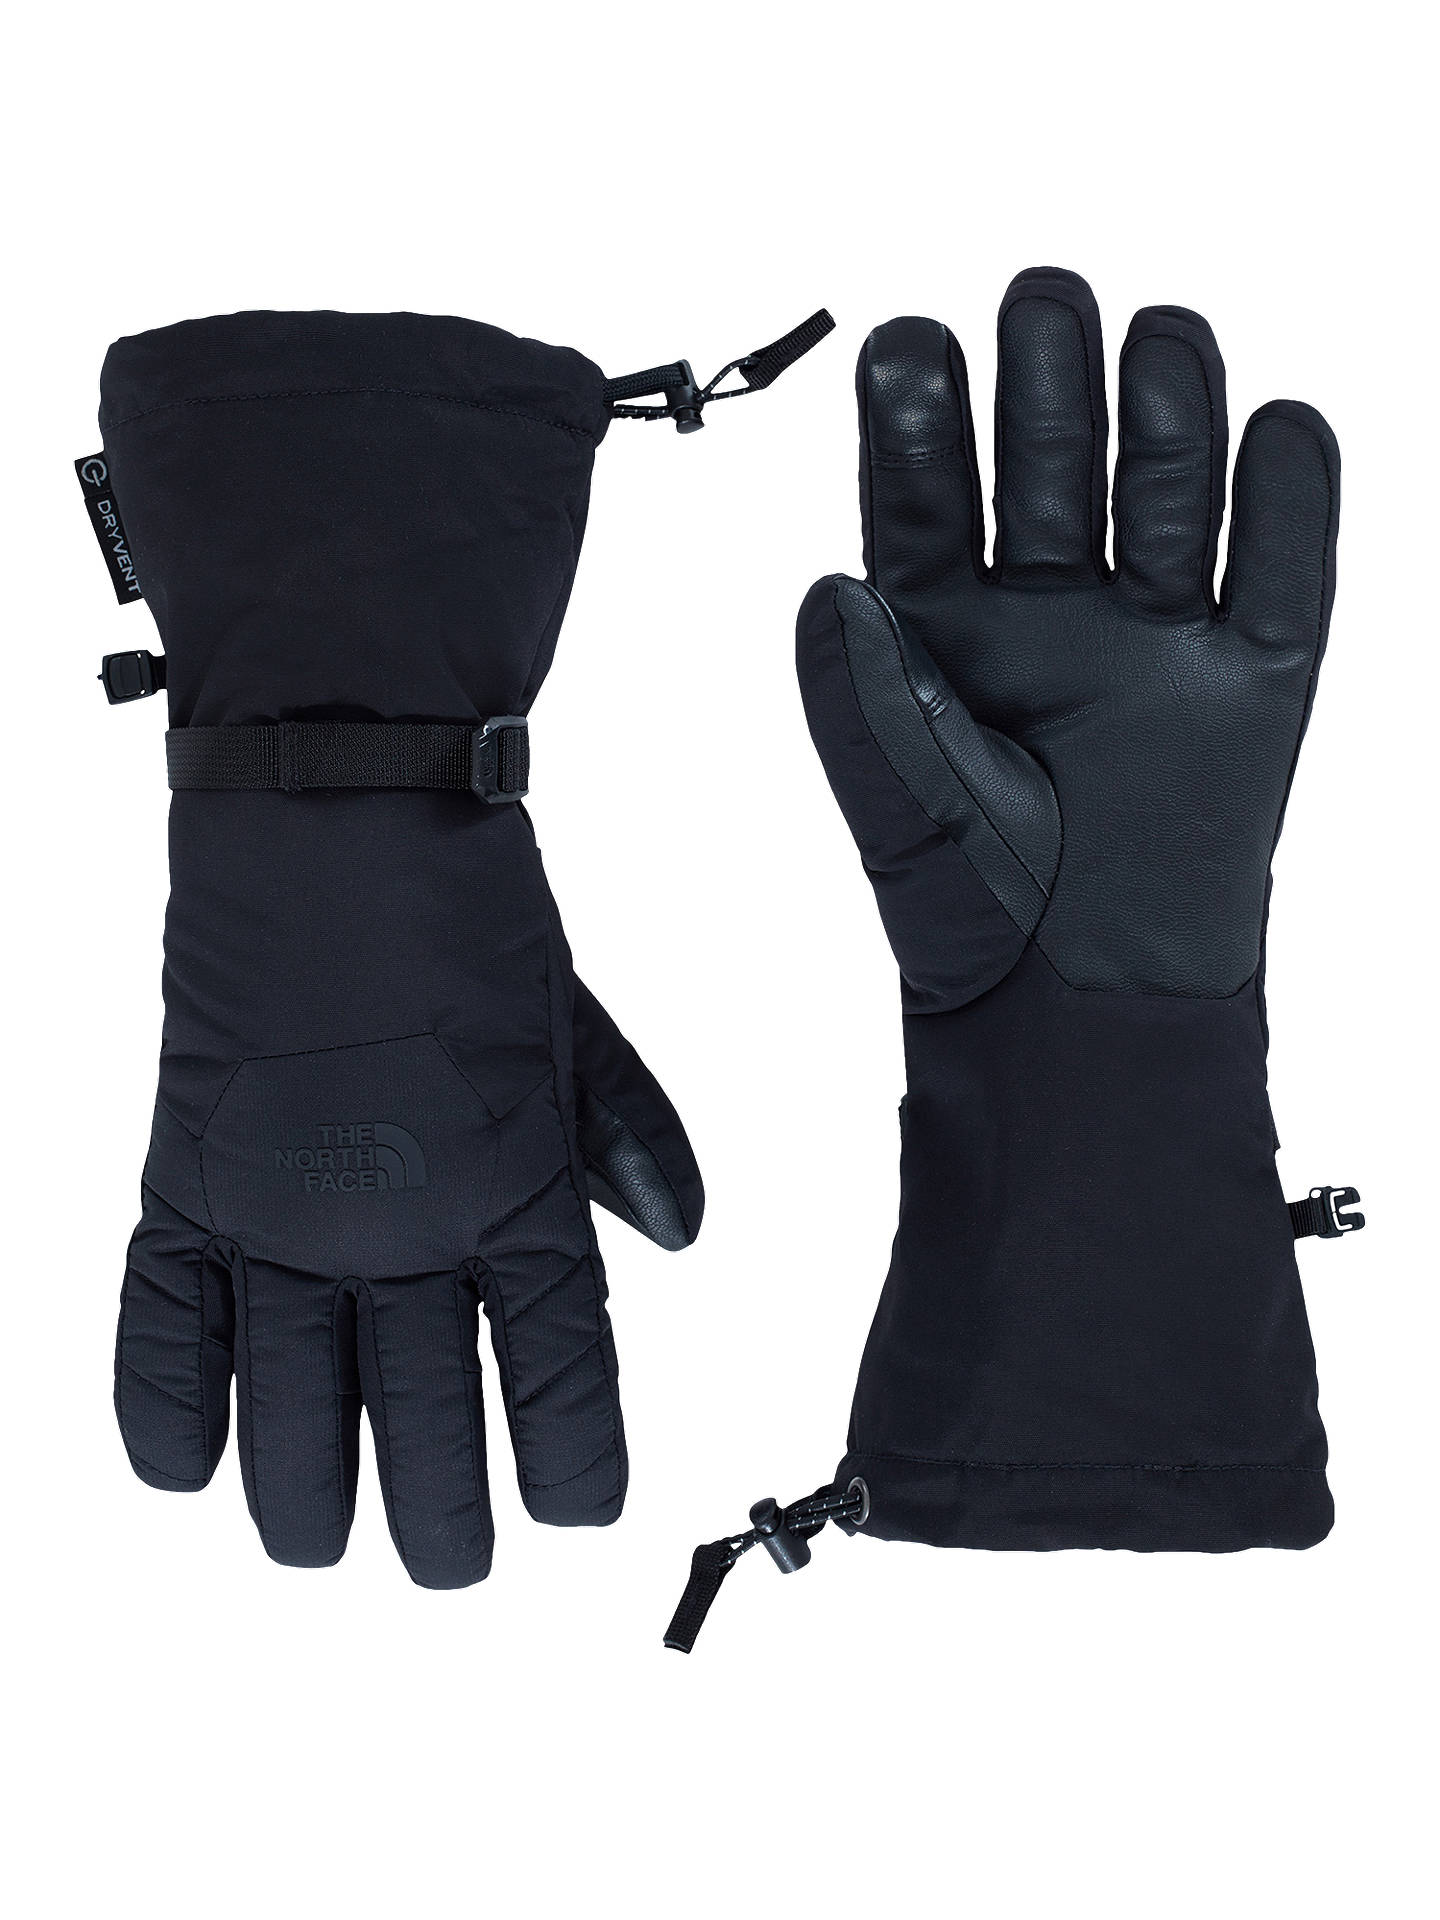 BuyThe North Face Waterproof Alpine Ski Gloves, Black, S Online at johnlewis.com